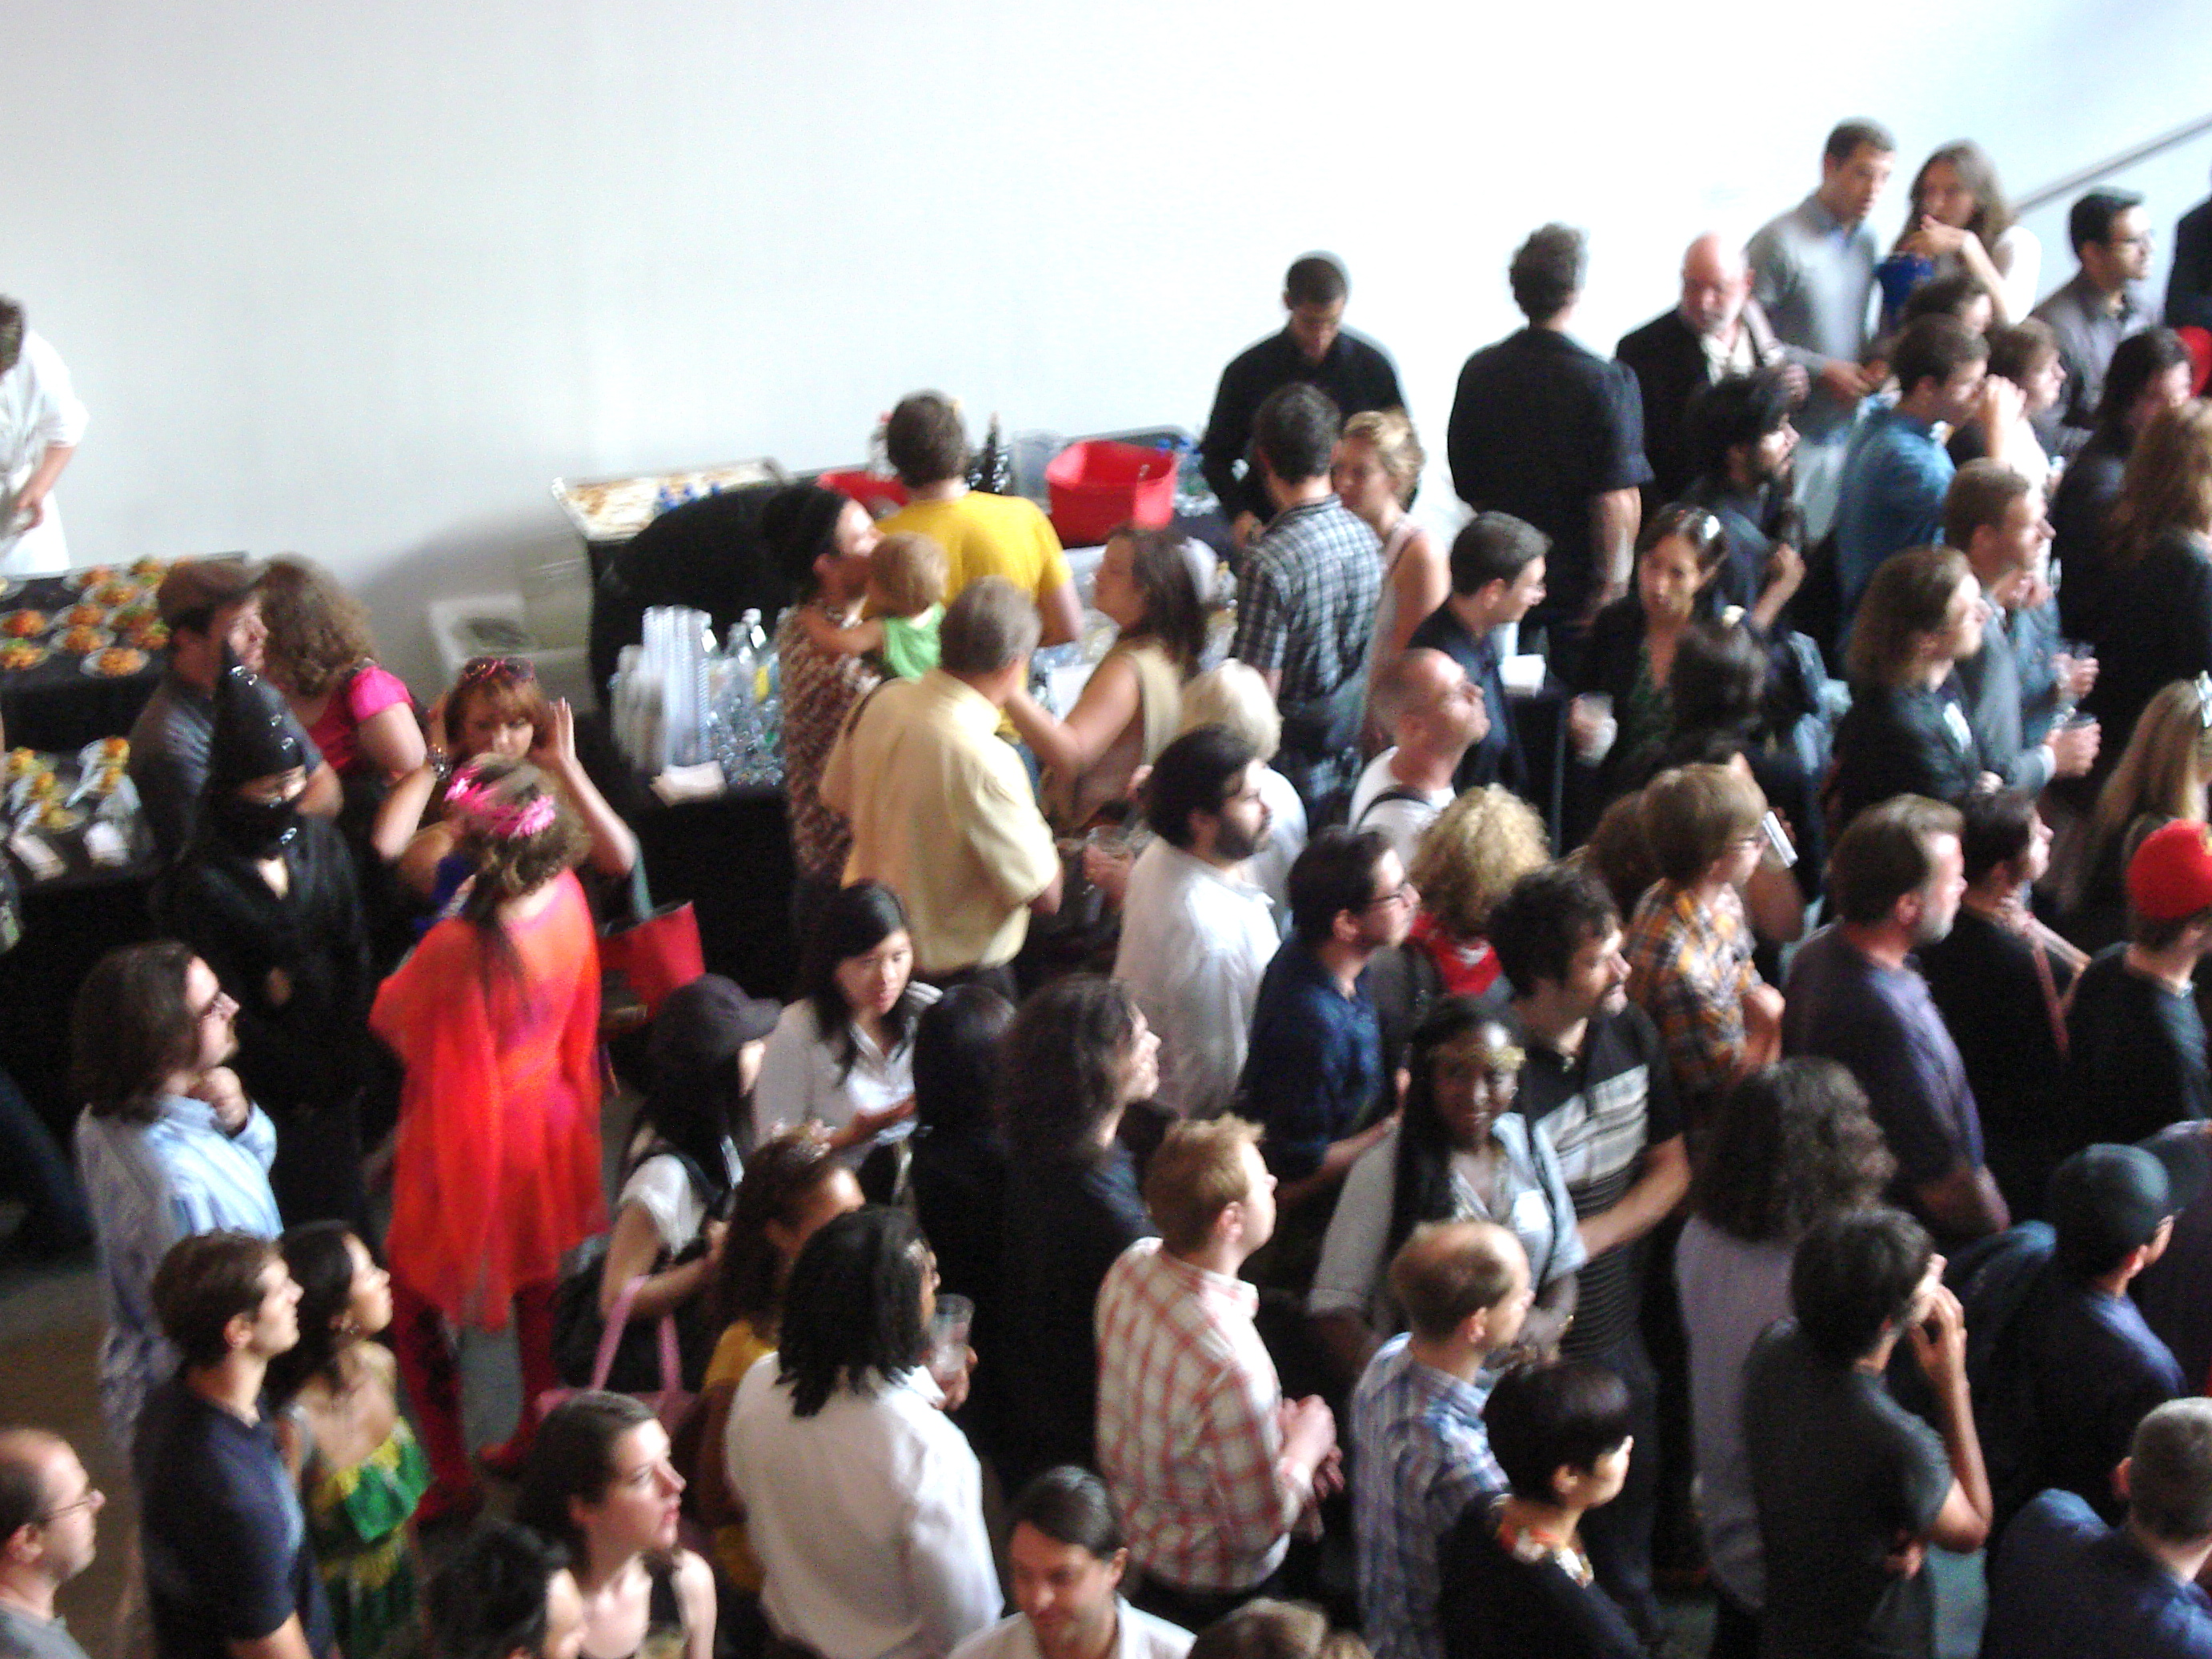 MoMA crowd from above.